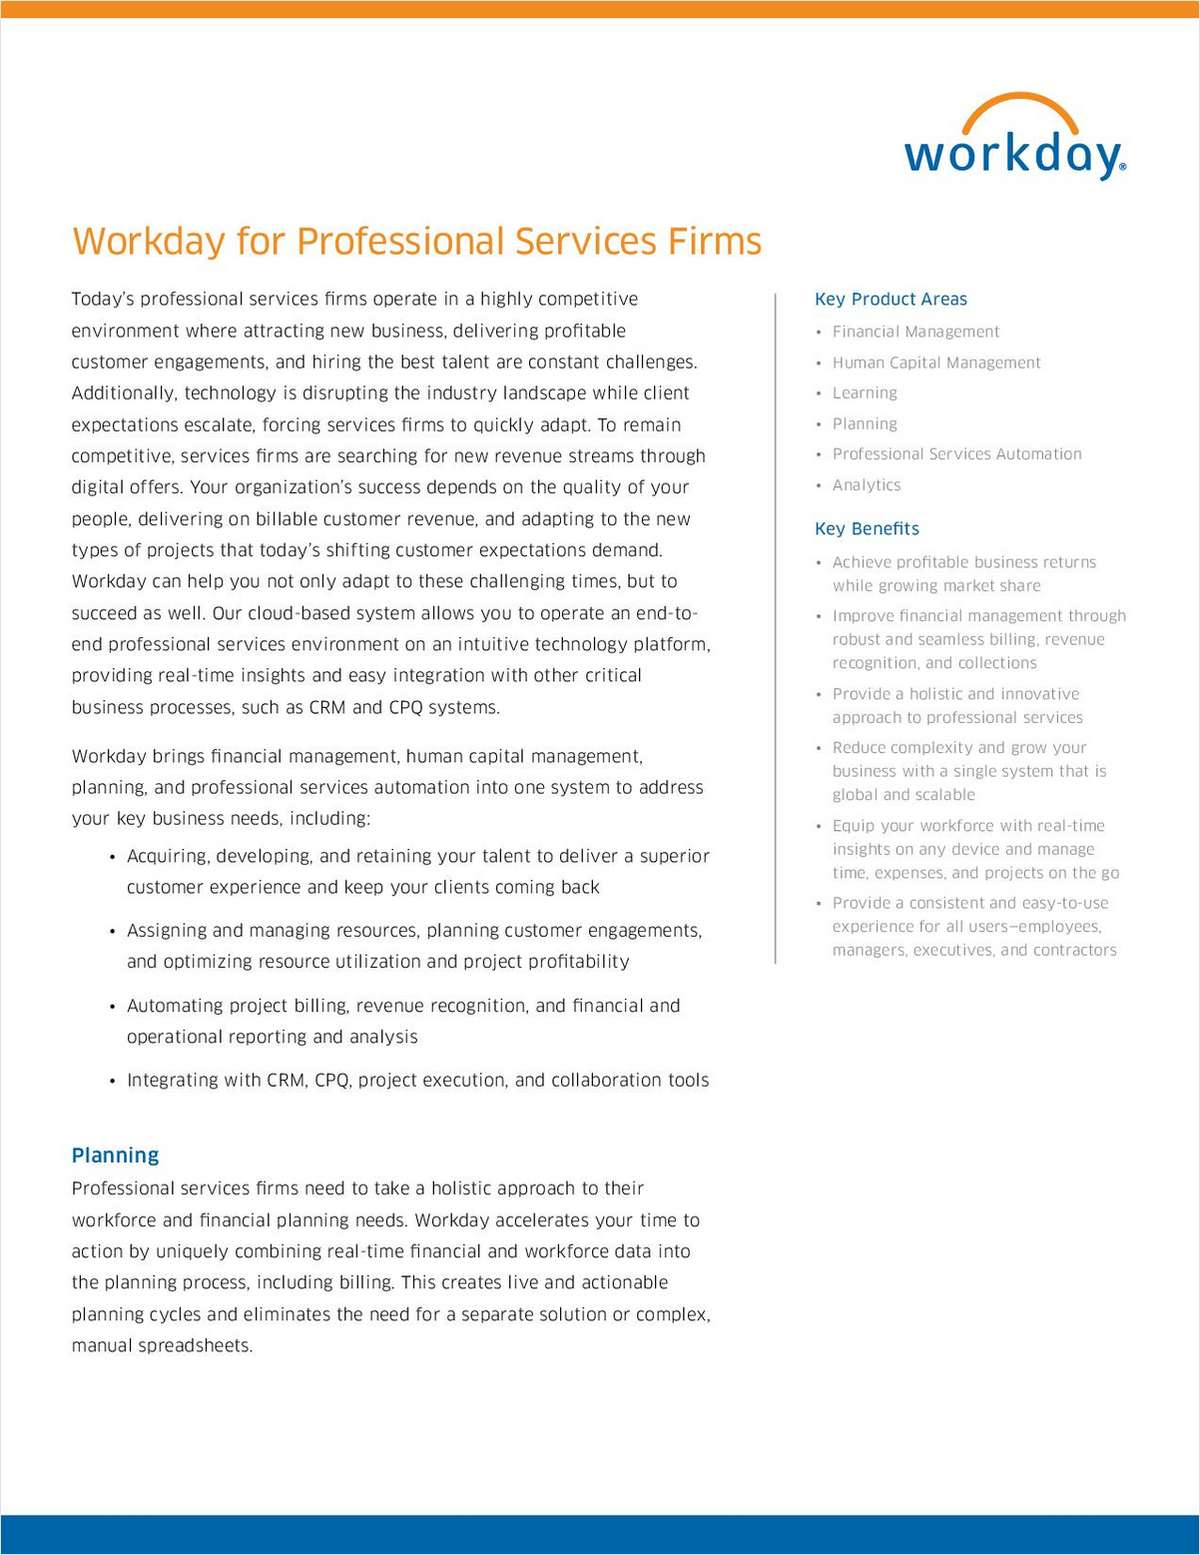 Workday for Professional Services Firms